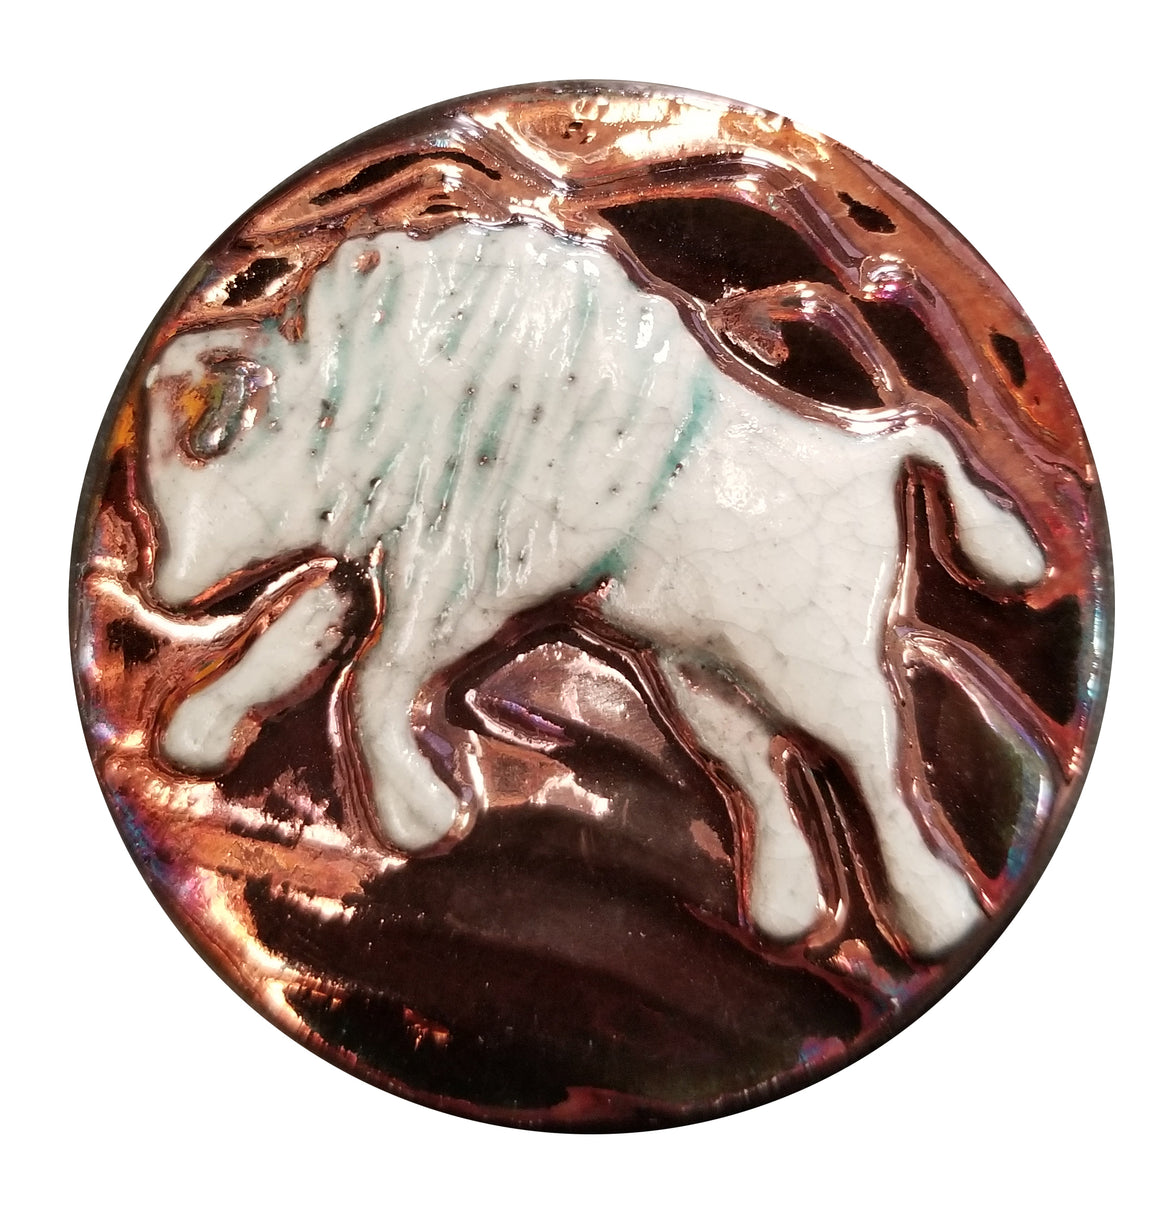 Bison Medallion Magnet from Raku Pottery